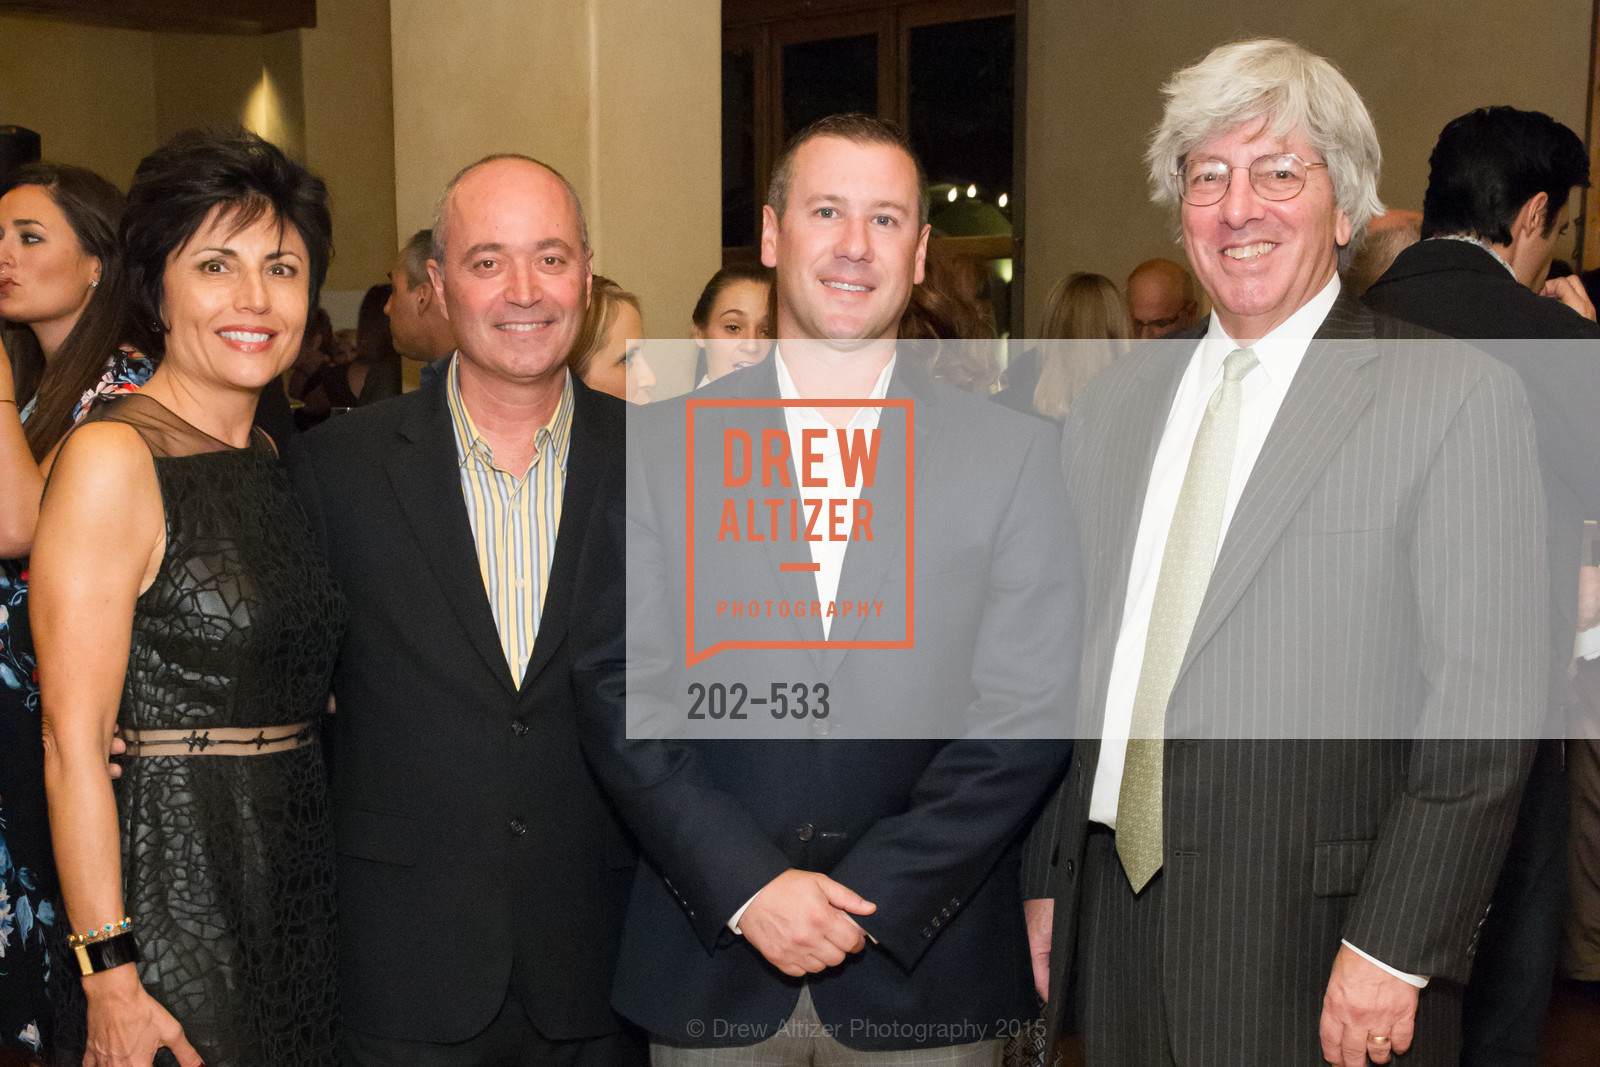 Joan Dauria, John Gumas, Gus Panagotacos, Byron Scordelis, Hellenic Charity Ball Cocktail Reception, Kokkari. 200 Jackson St, San Francisco, CA 94111, November 13th, 2015,Drew Altizer, Drew Altizer Photography, full-service agency, private events, San Francisco photographer, photographer california